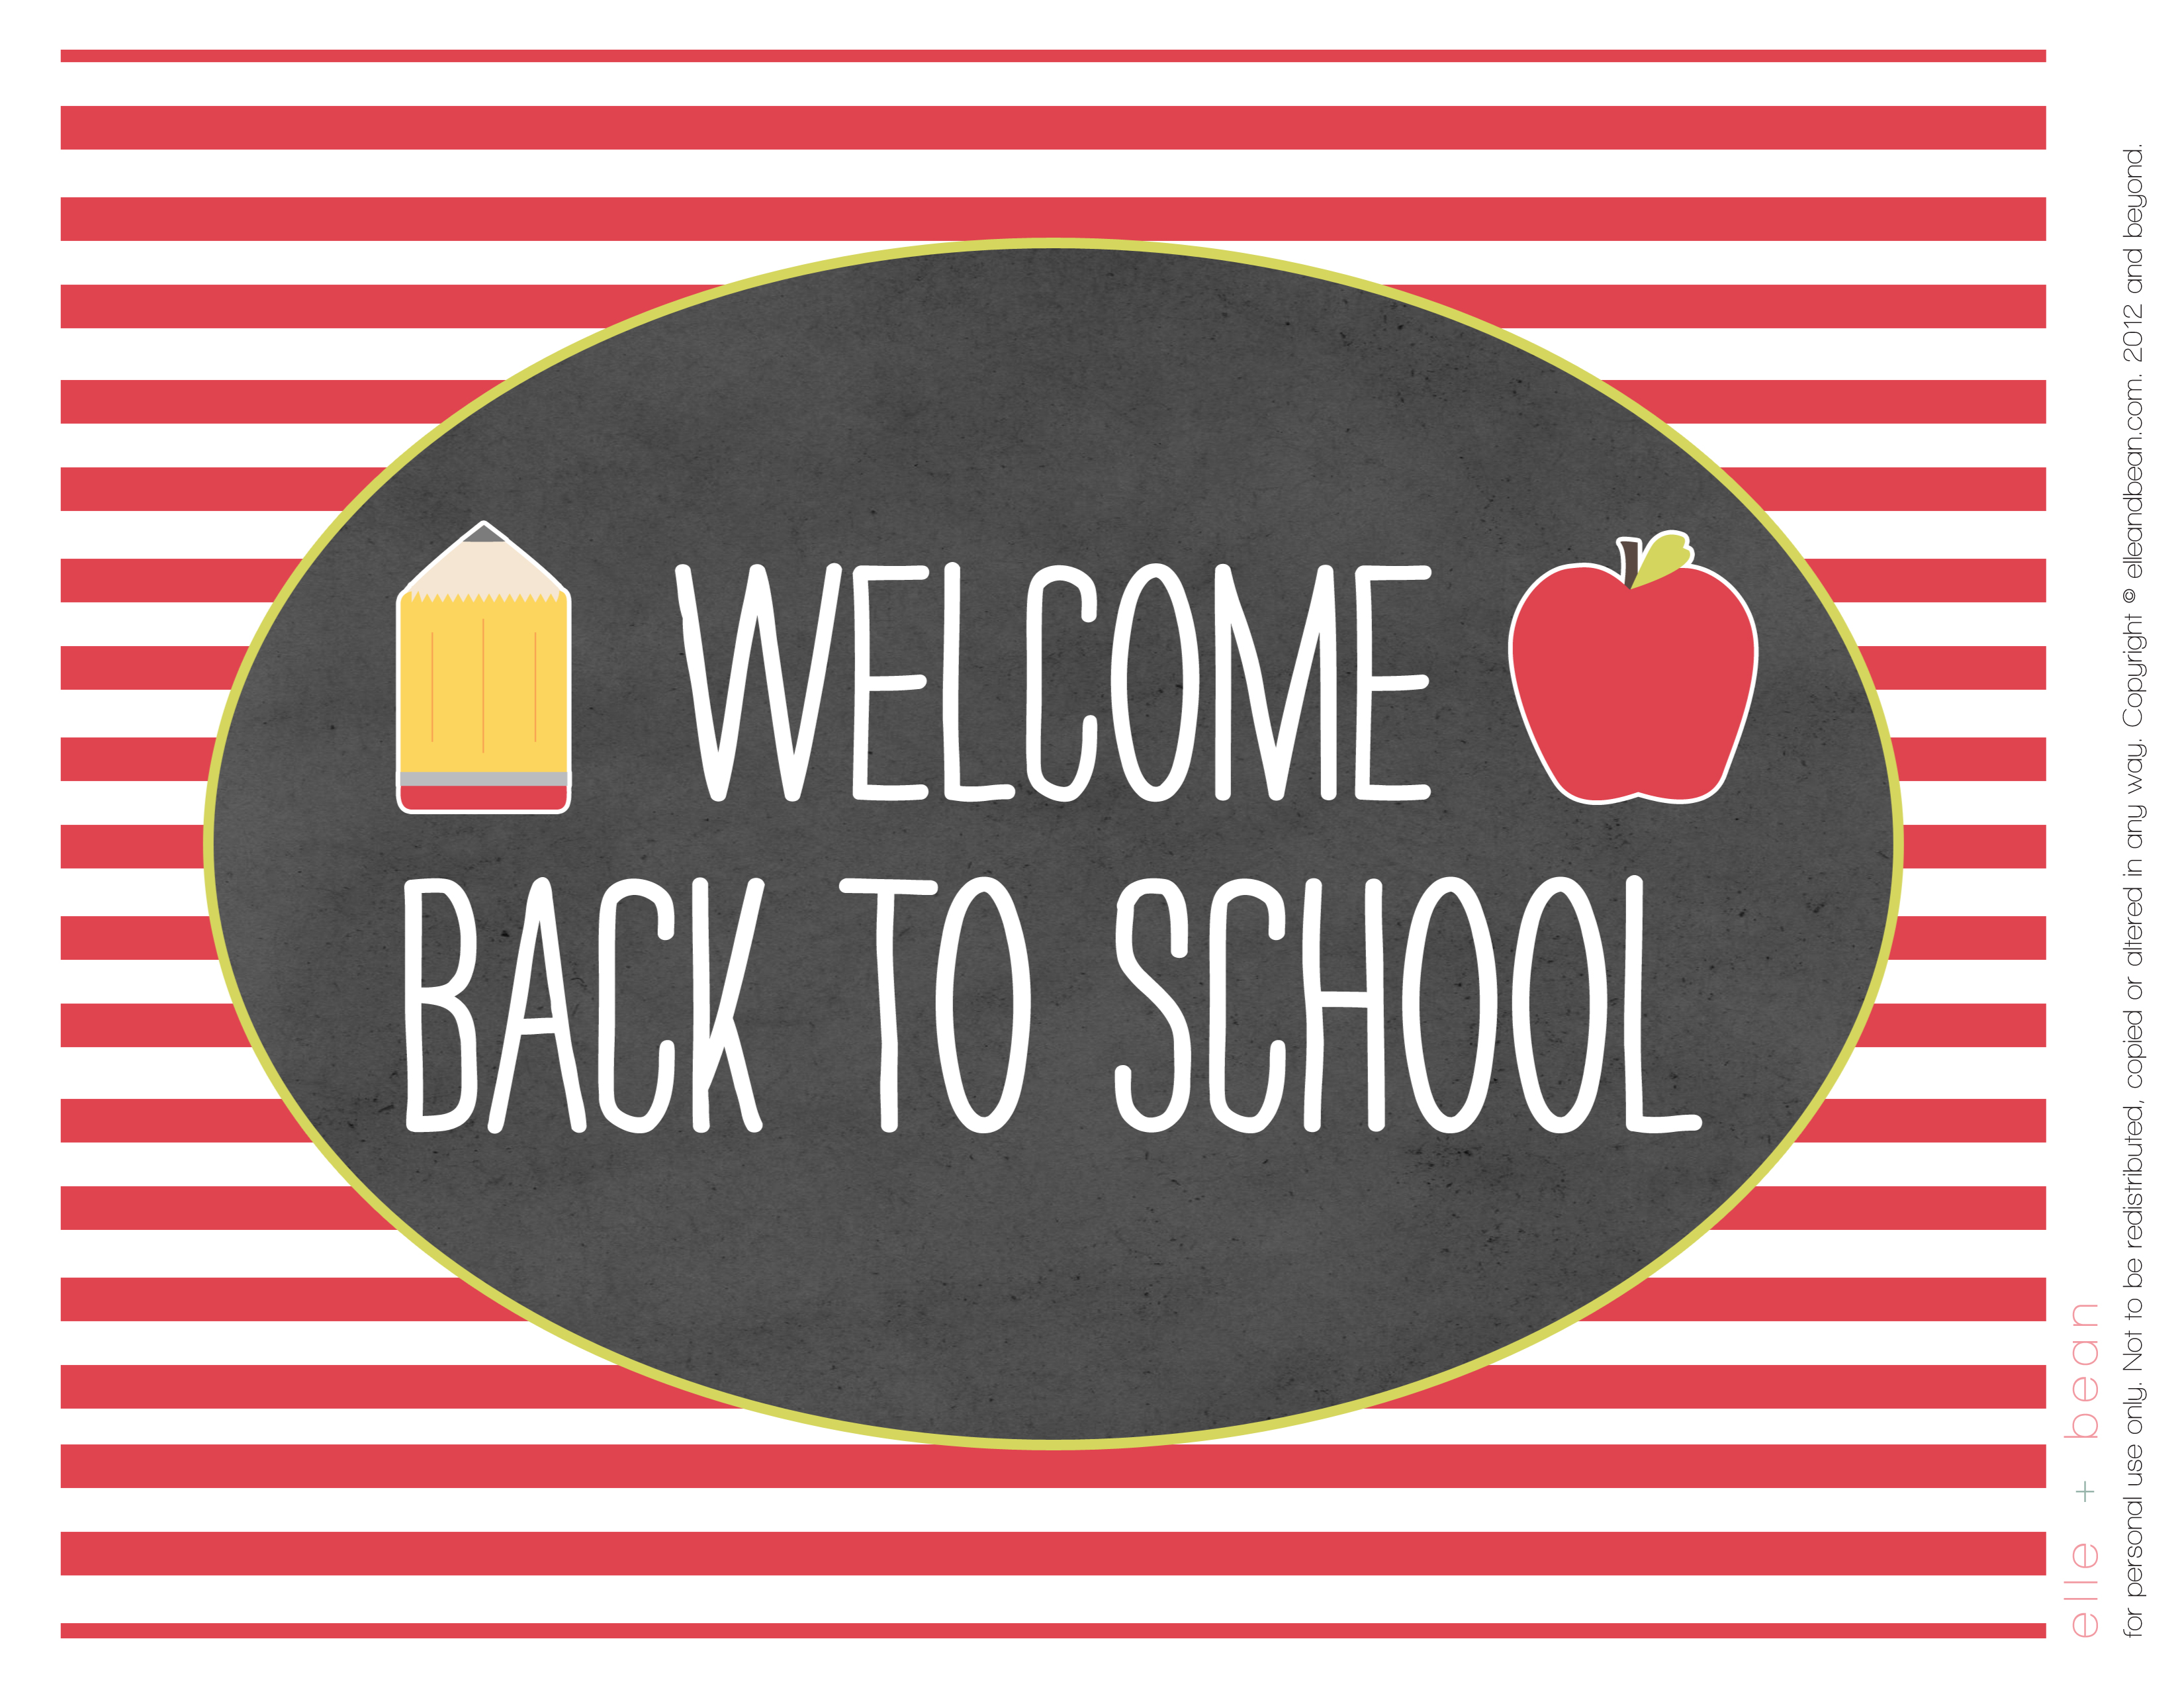 Crush image intended for printable back to school signs